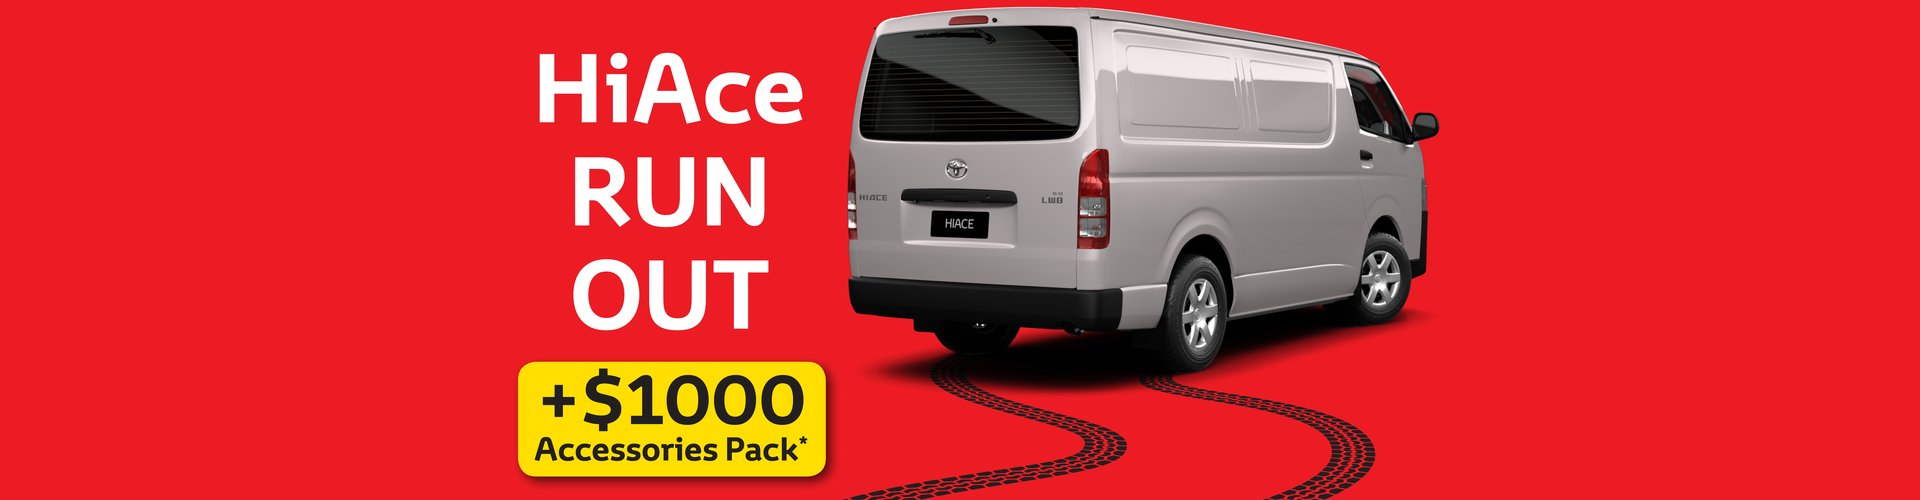 Waverley Toyota's HiAce RUN OUT + Bonus $1,000 Accessories Pack